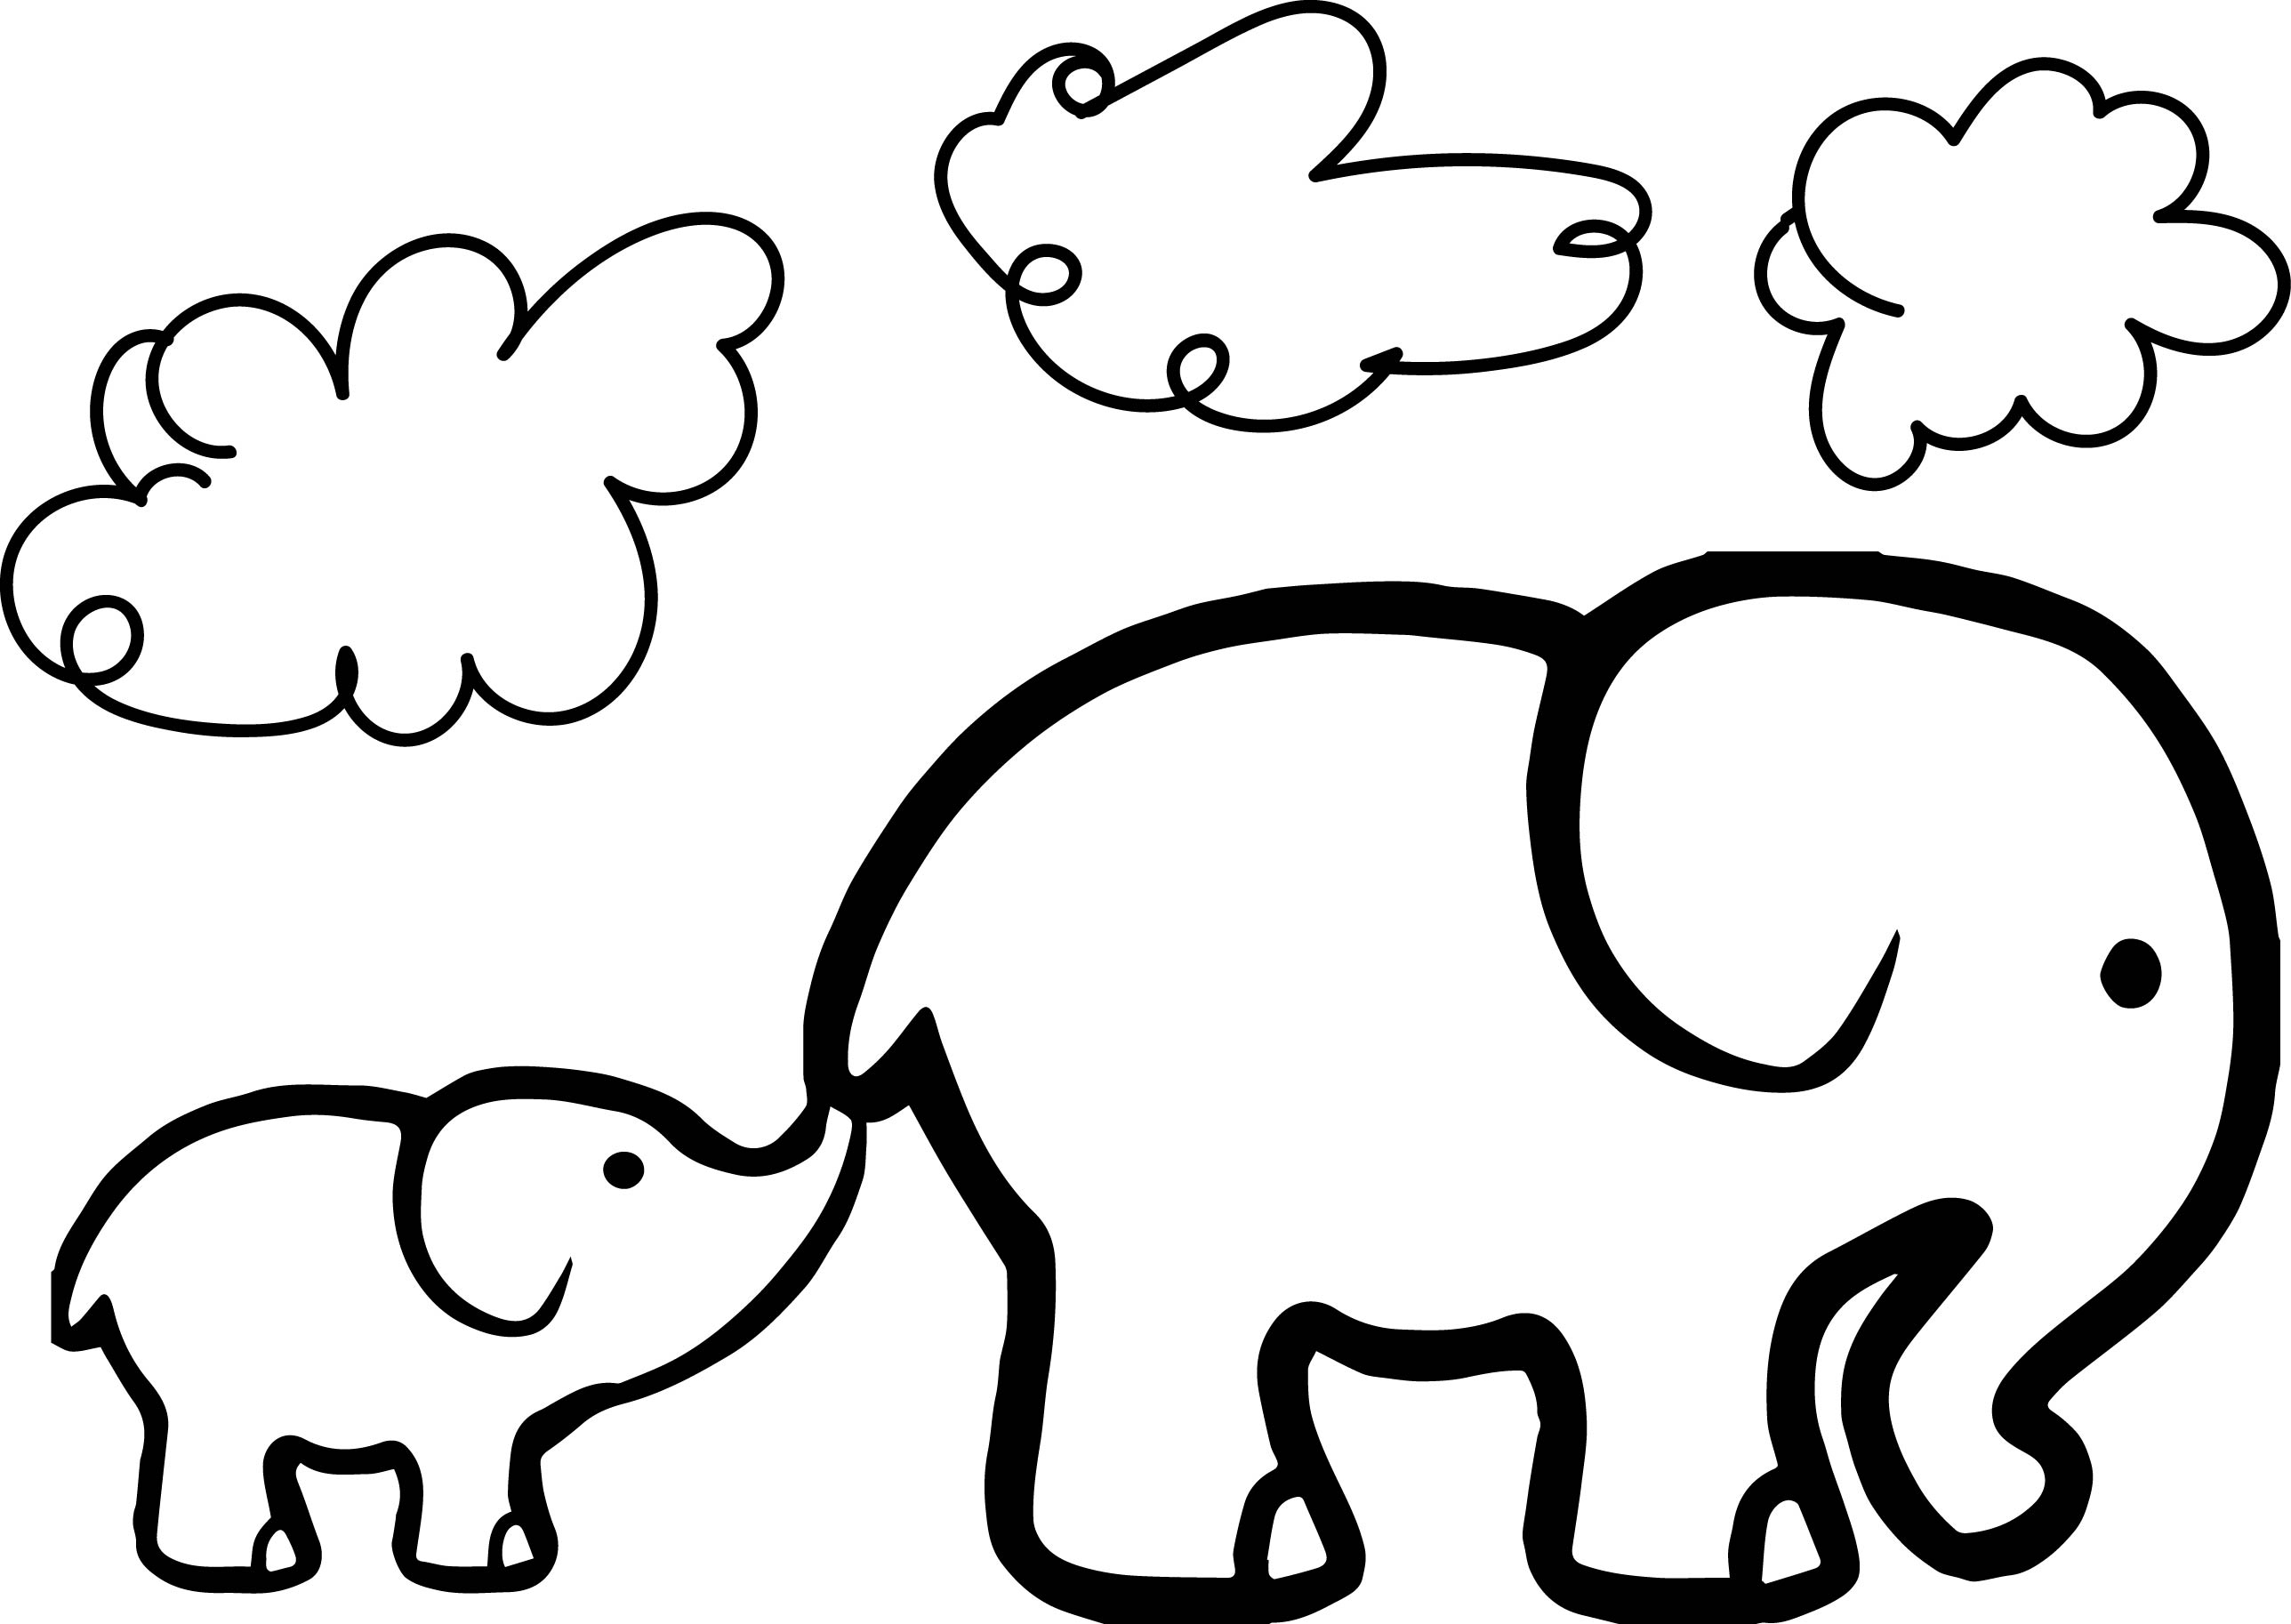 adult coloring pages elephant - baby elephant coloring pages